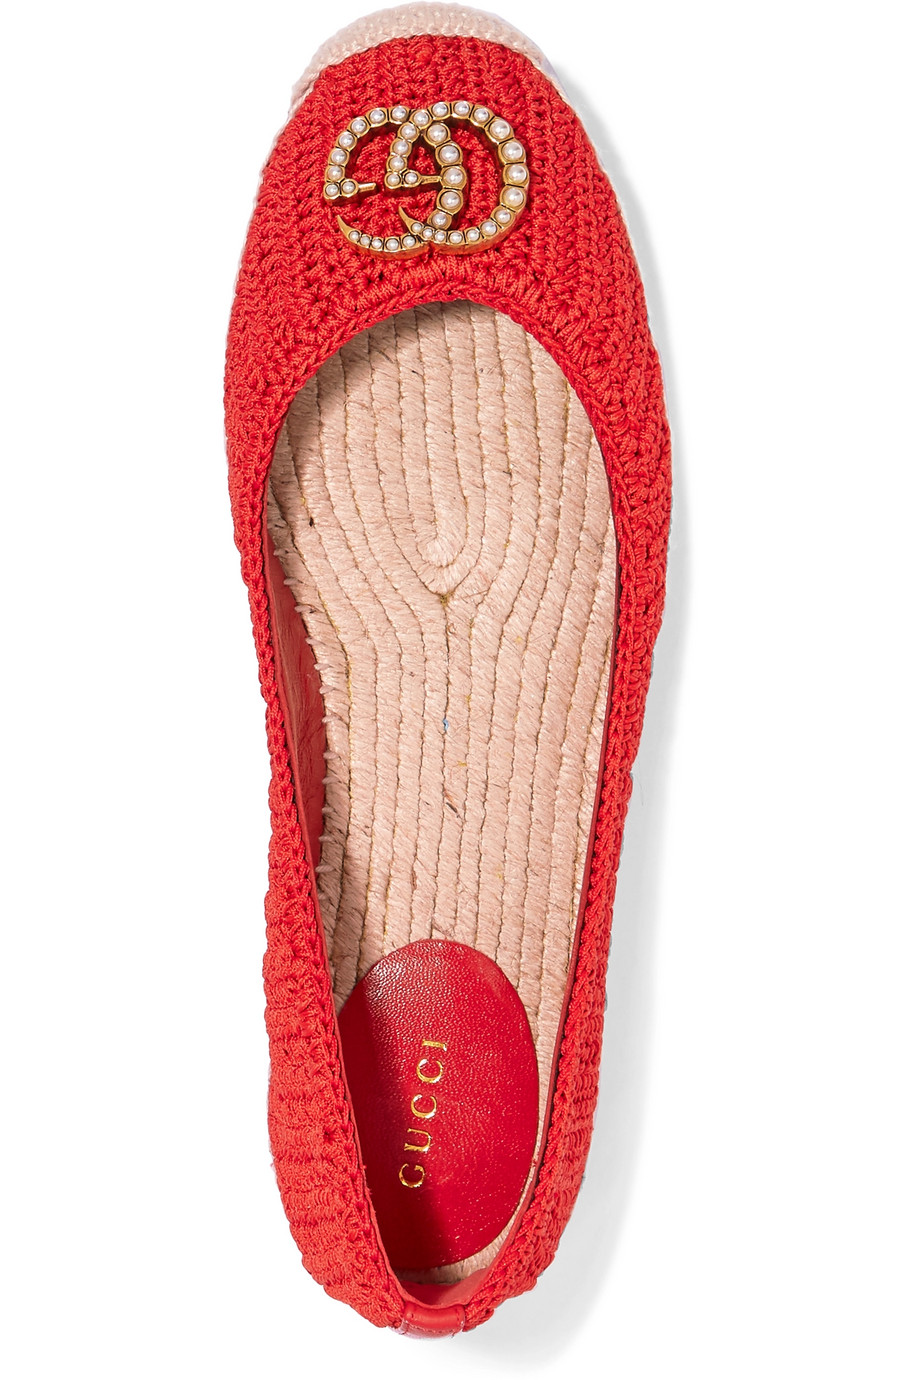 Painted espadrilles Gucci buy Painted espadrilles Gucci internet shop